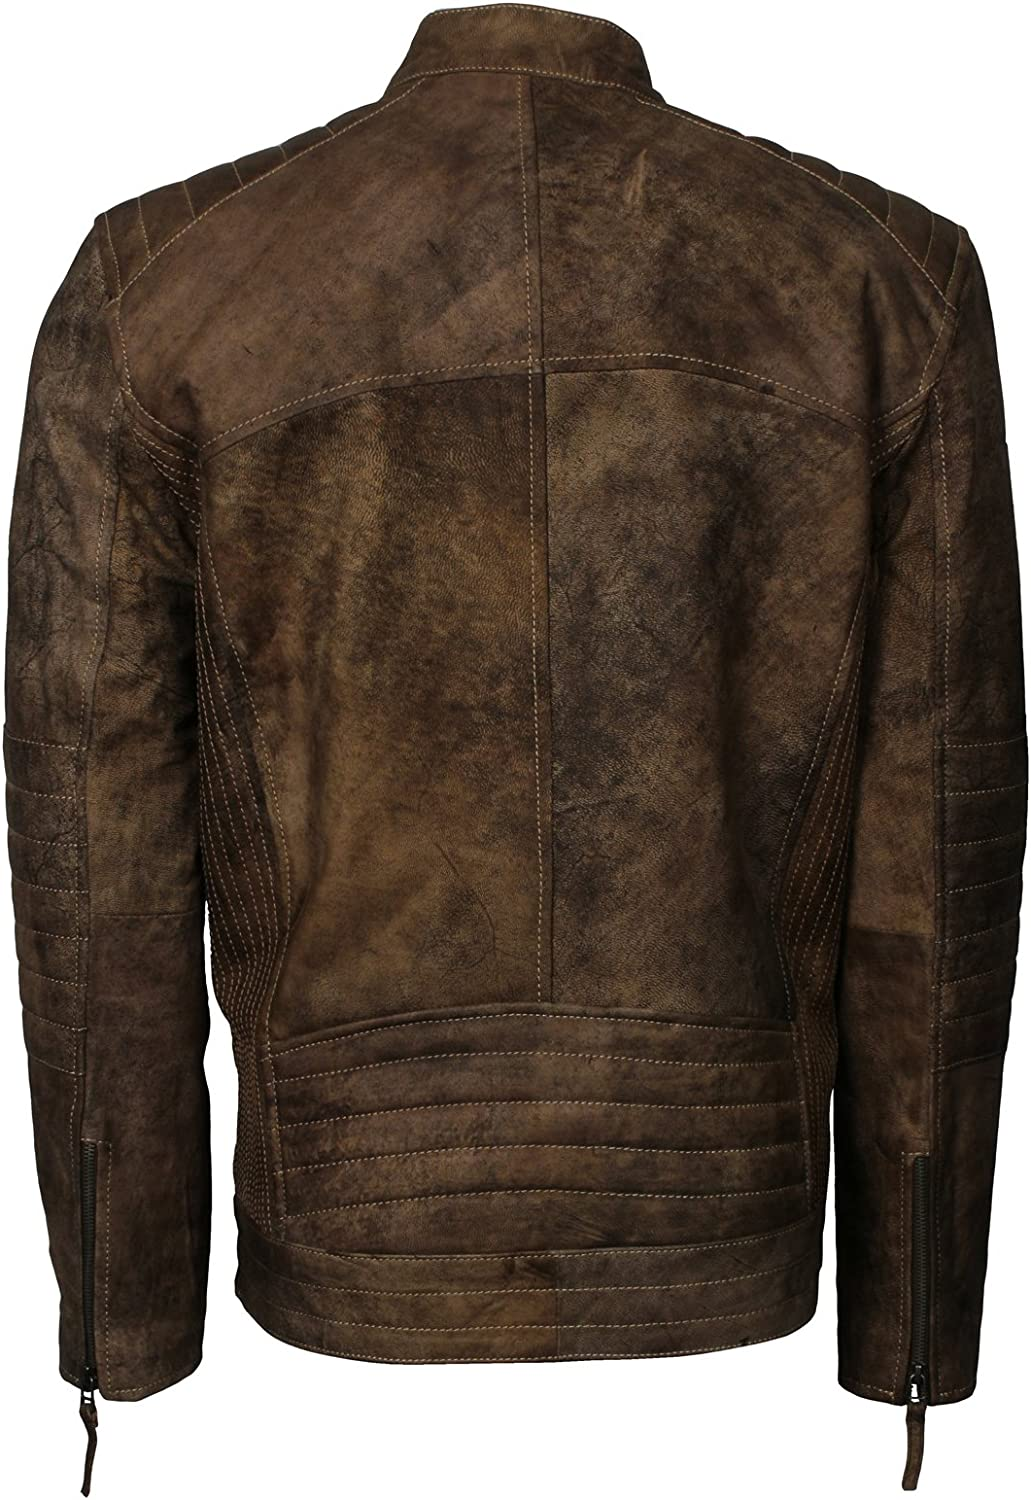 Distressed Brown Vintage Style Classic Designer Leather Jacket